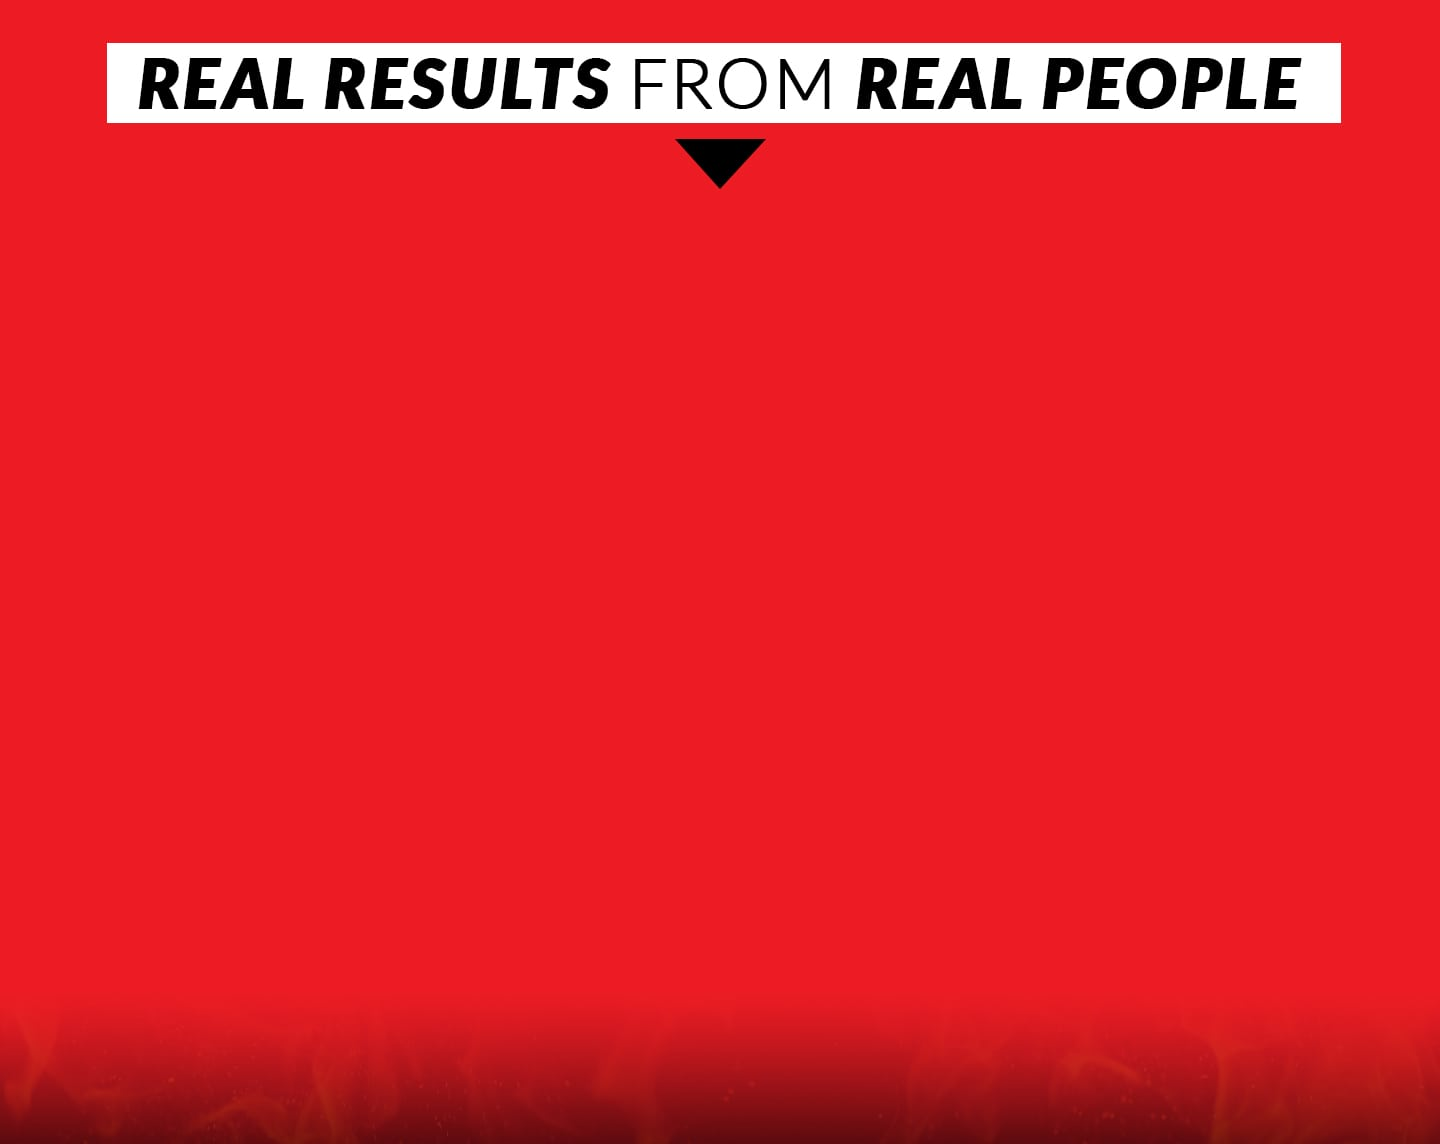 REAL RESULTS FROM REAL PEOPLE